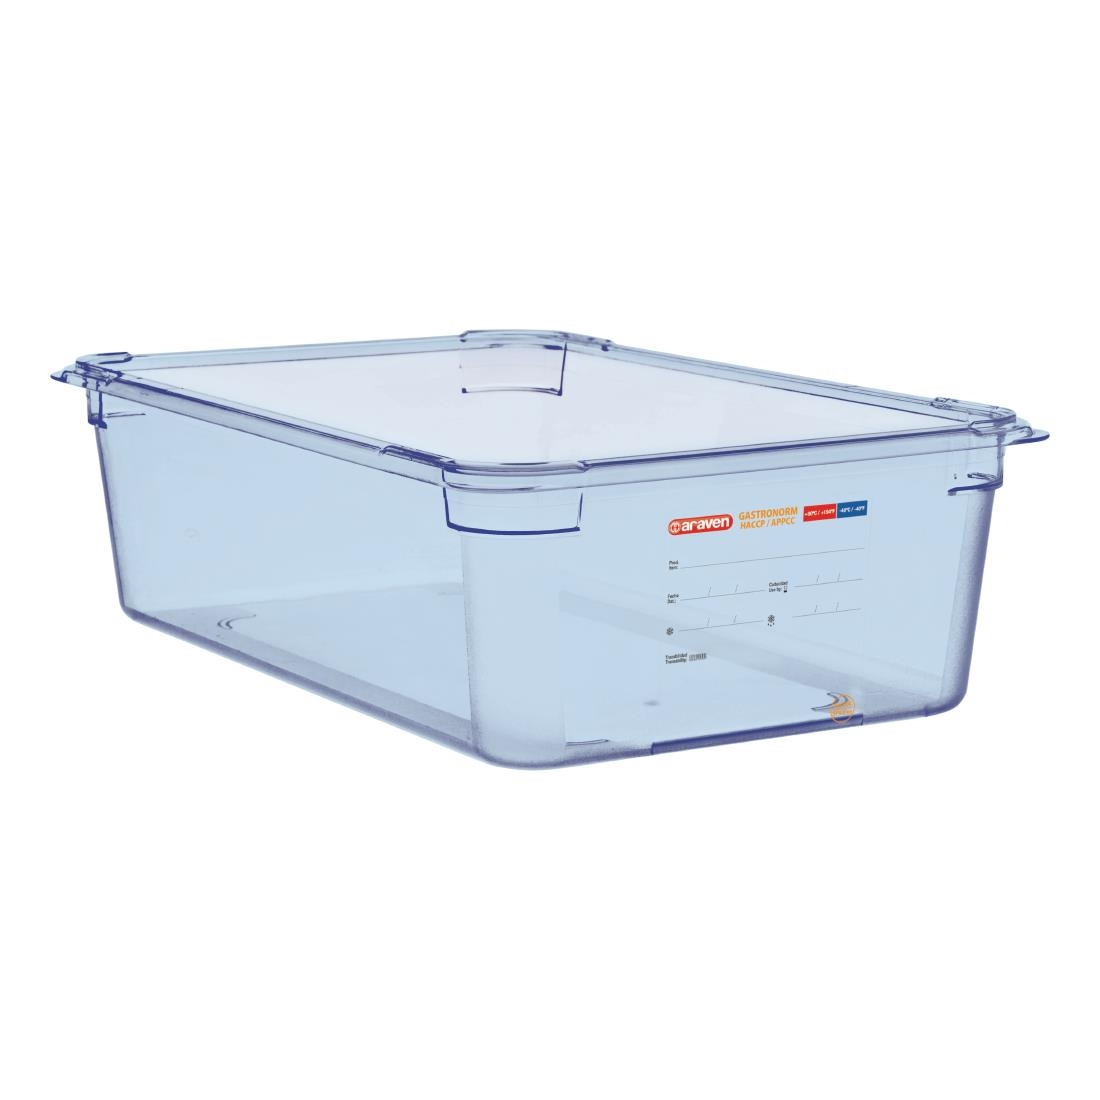 Image of Araven ABS Food Storage Container Blue GN 1/1 150mm